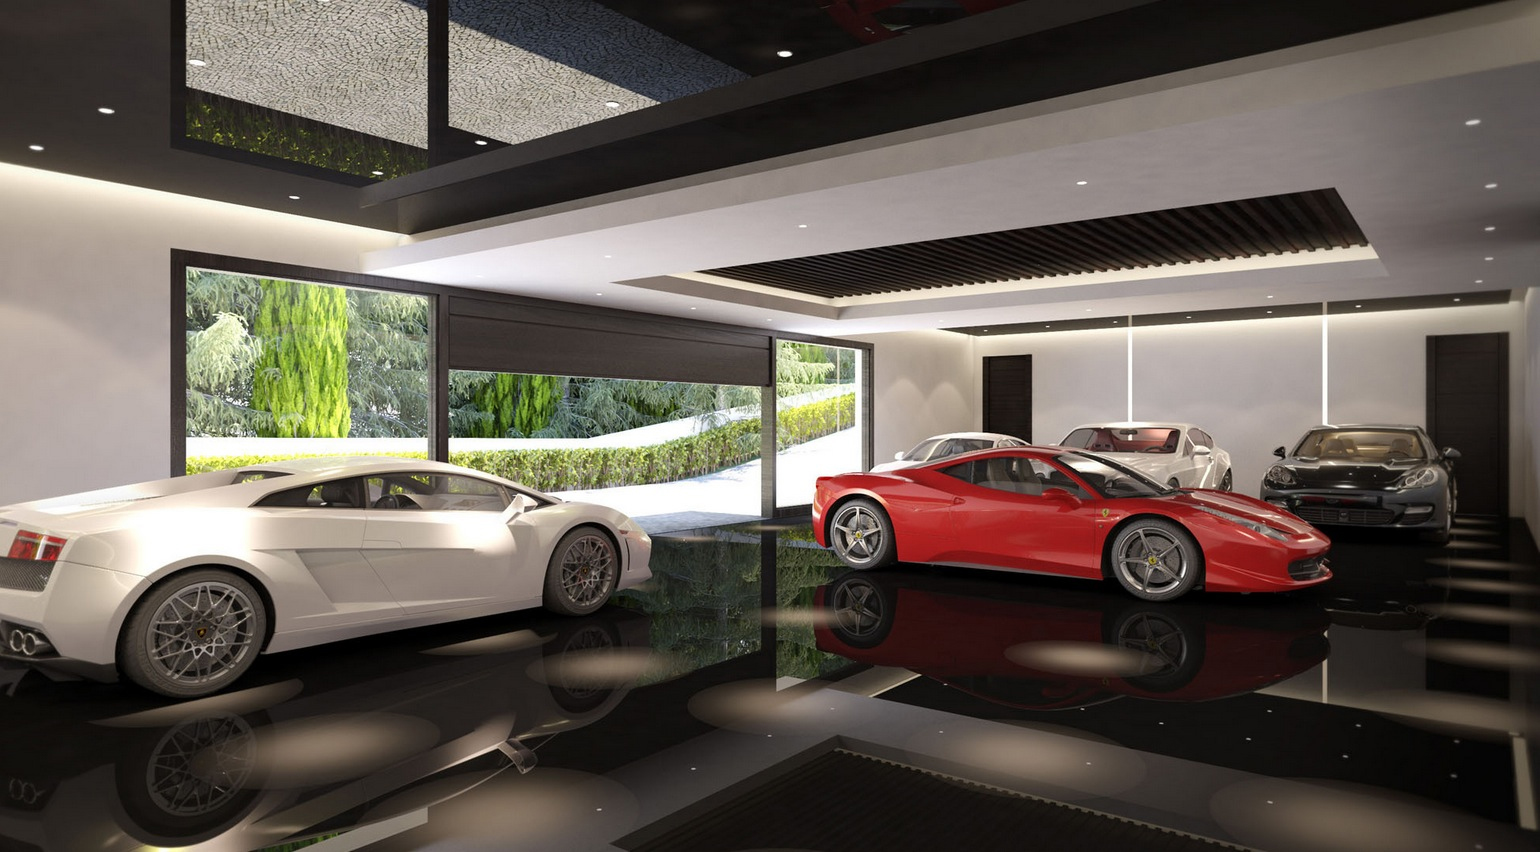 Private garage interior design ideas for Car garage interior design